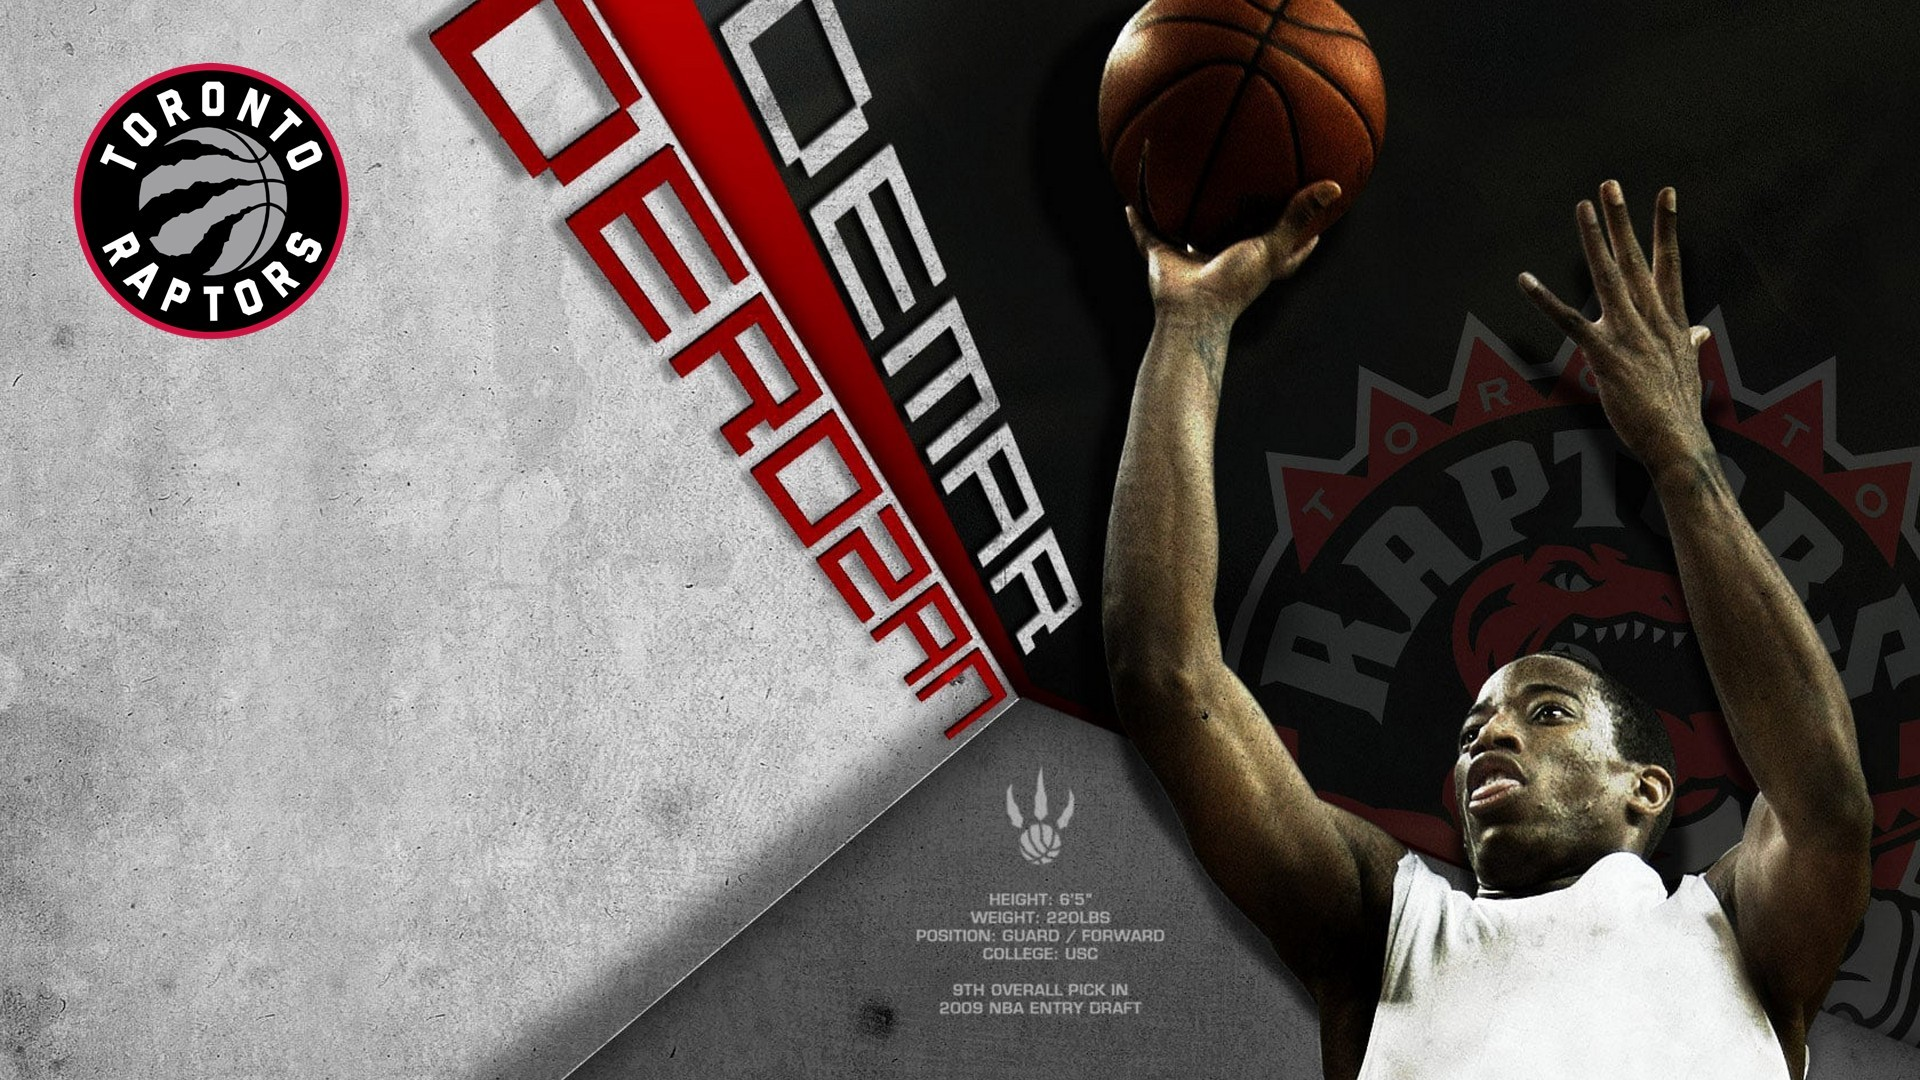 Res: 1920x1080, DeMar DeRozan Wallpaper with image dimensions  pixel. You can make  this wallpaper for your